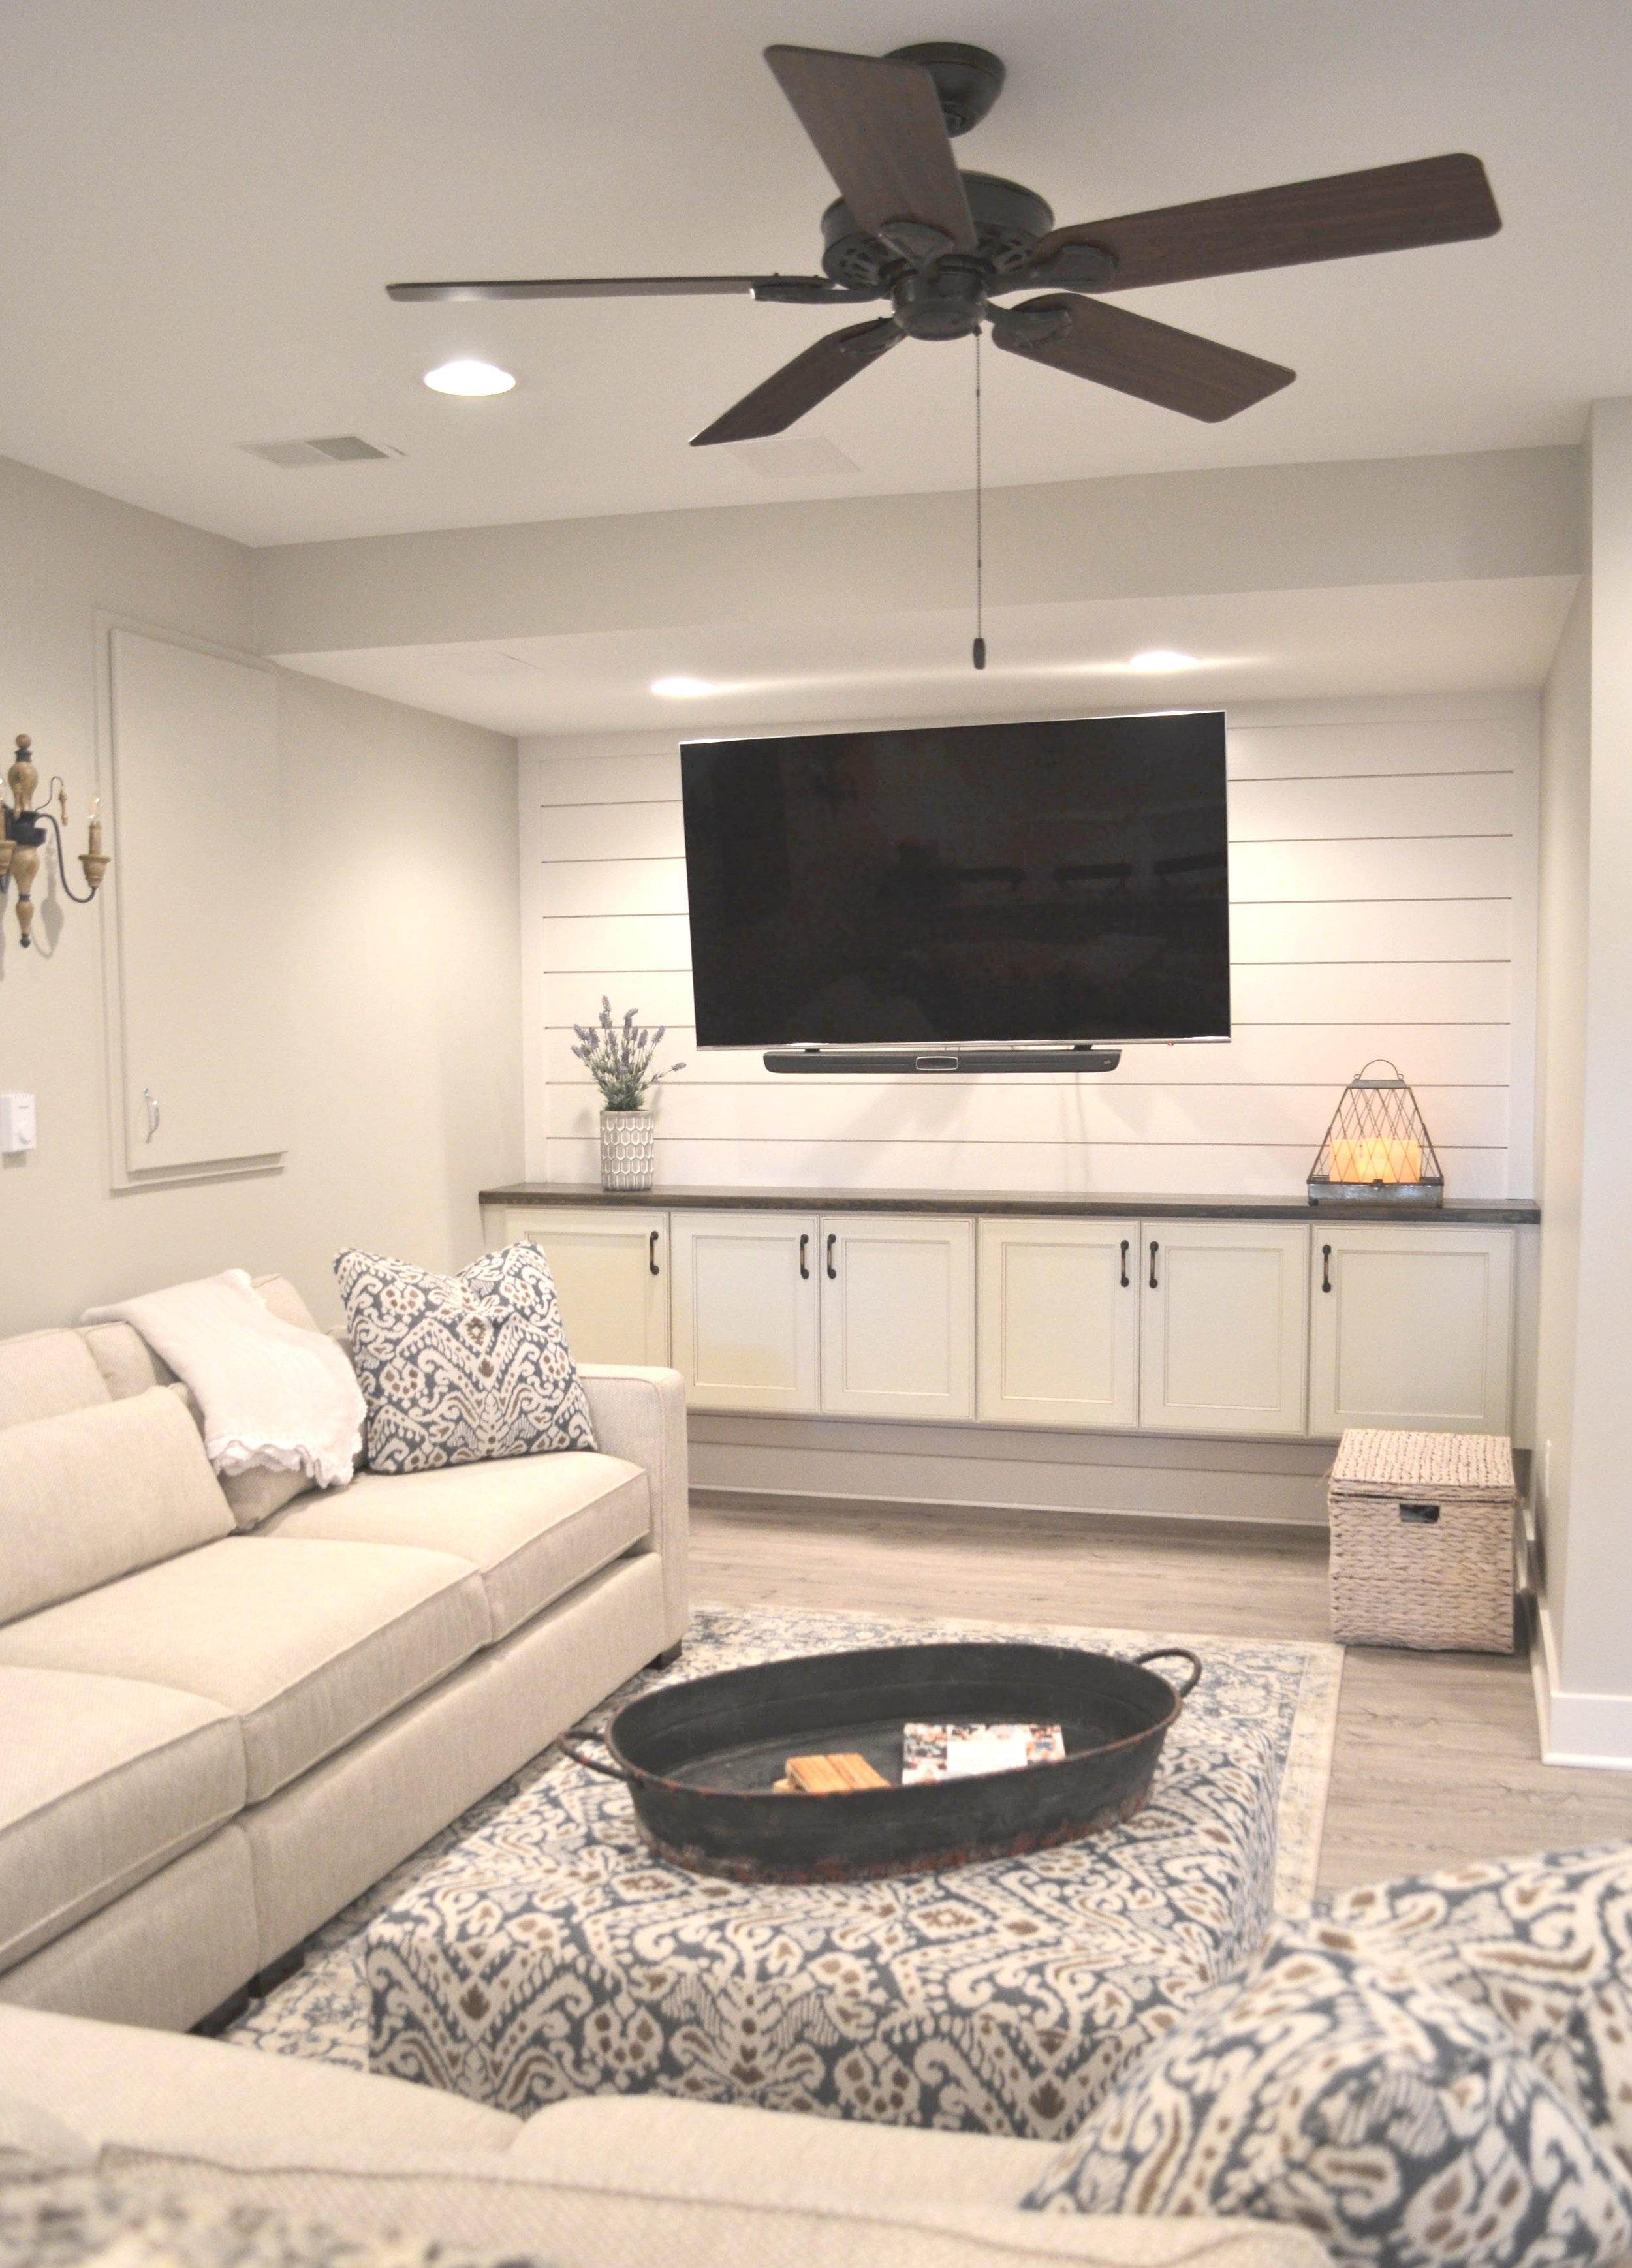 Modern Farmhouse | Our Finished Basement